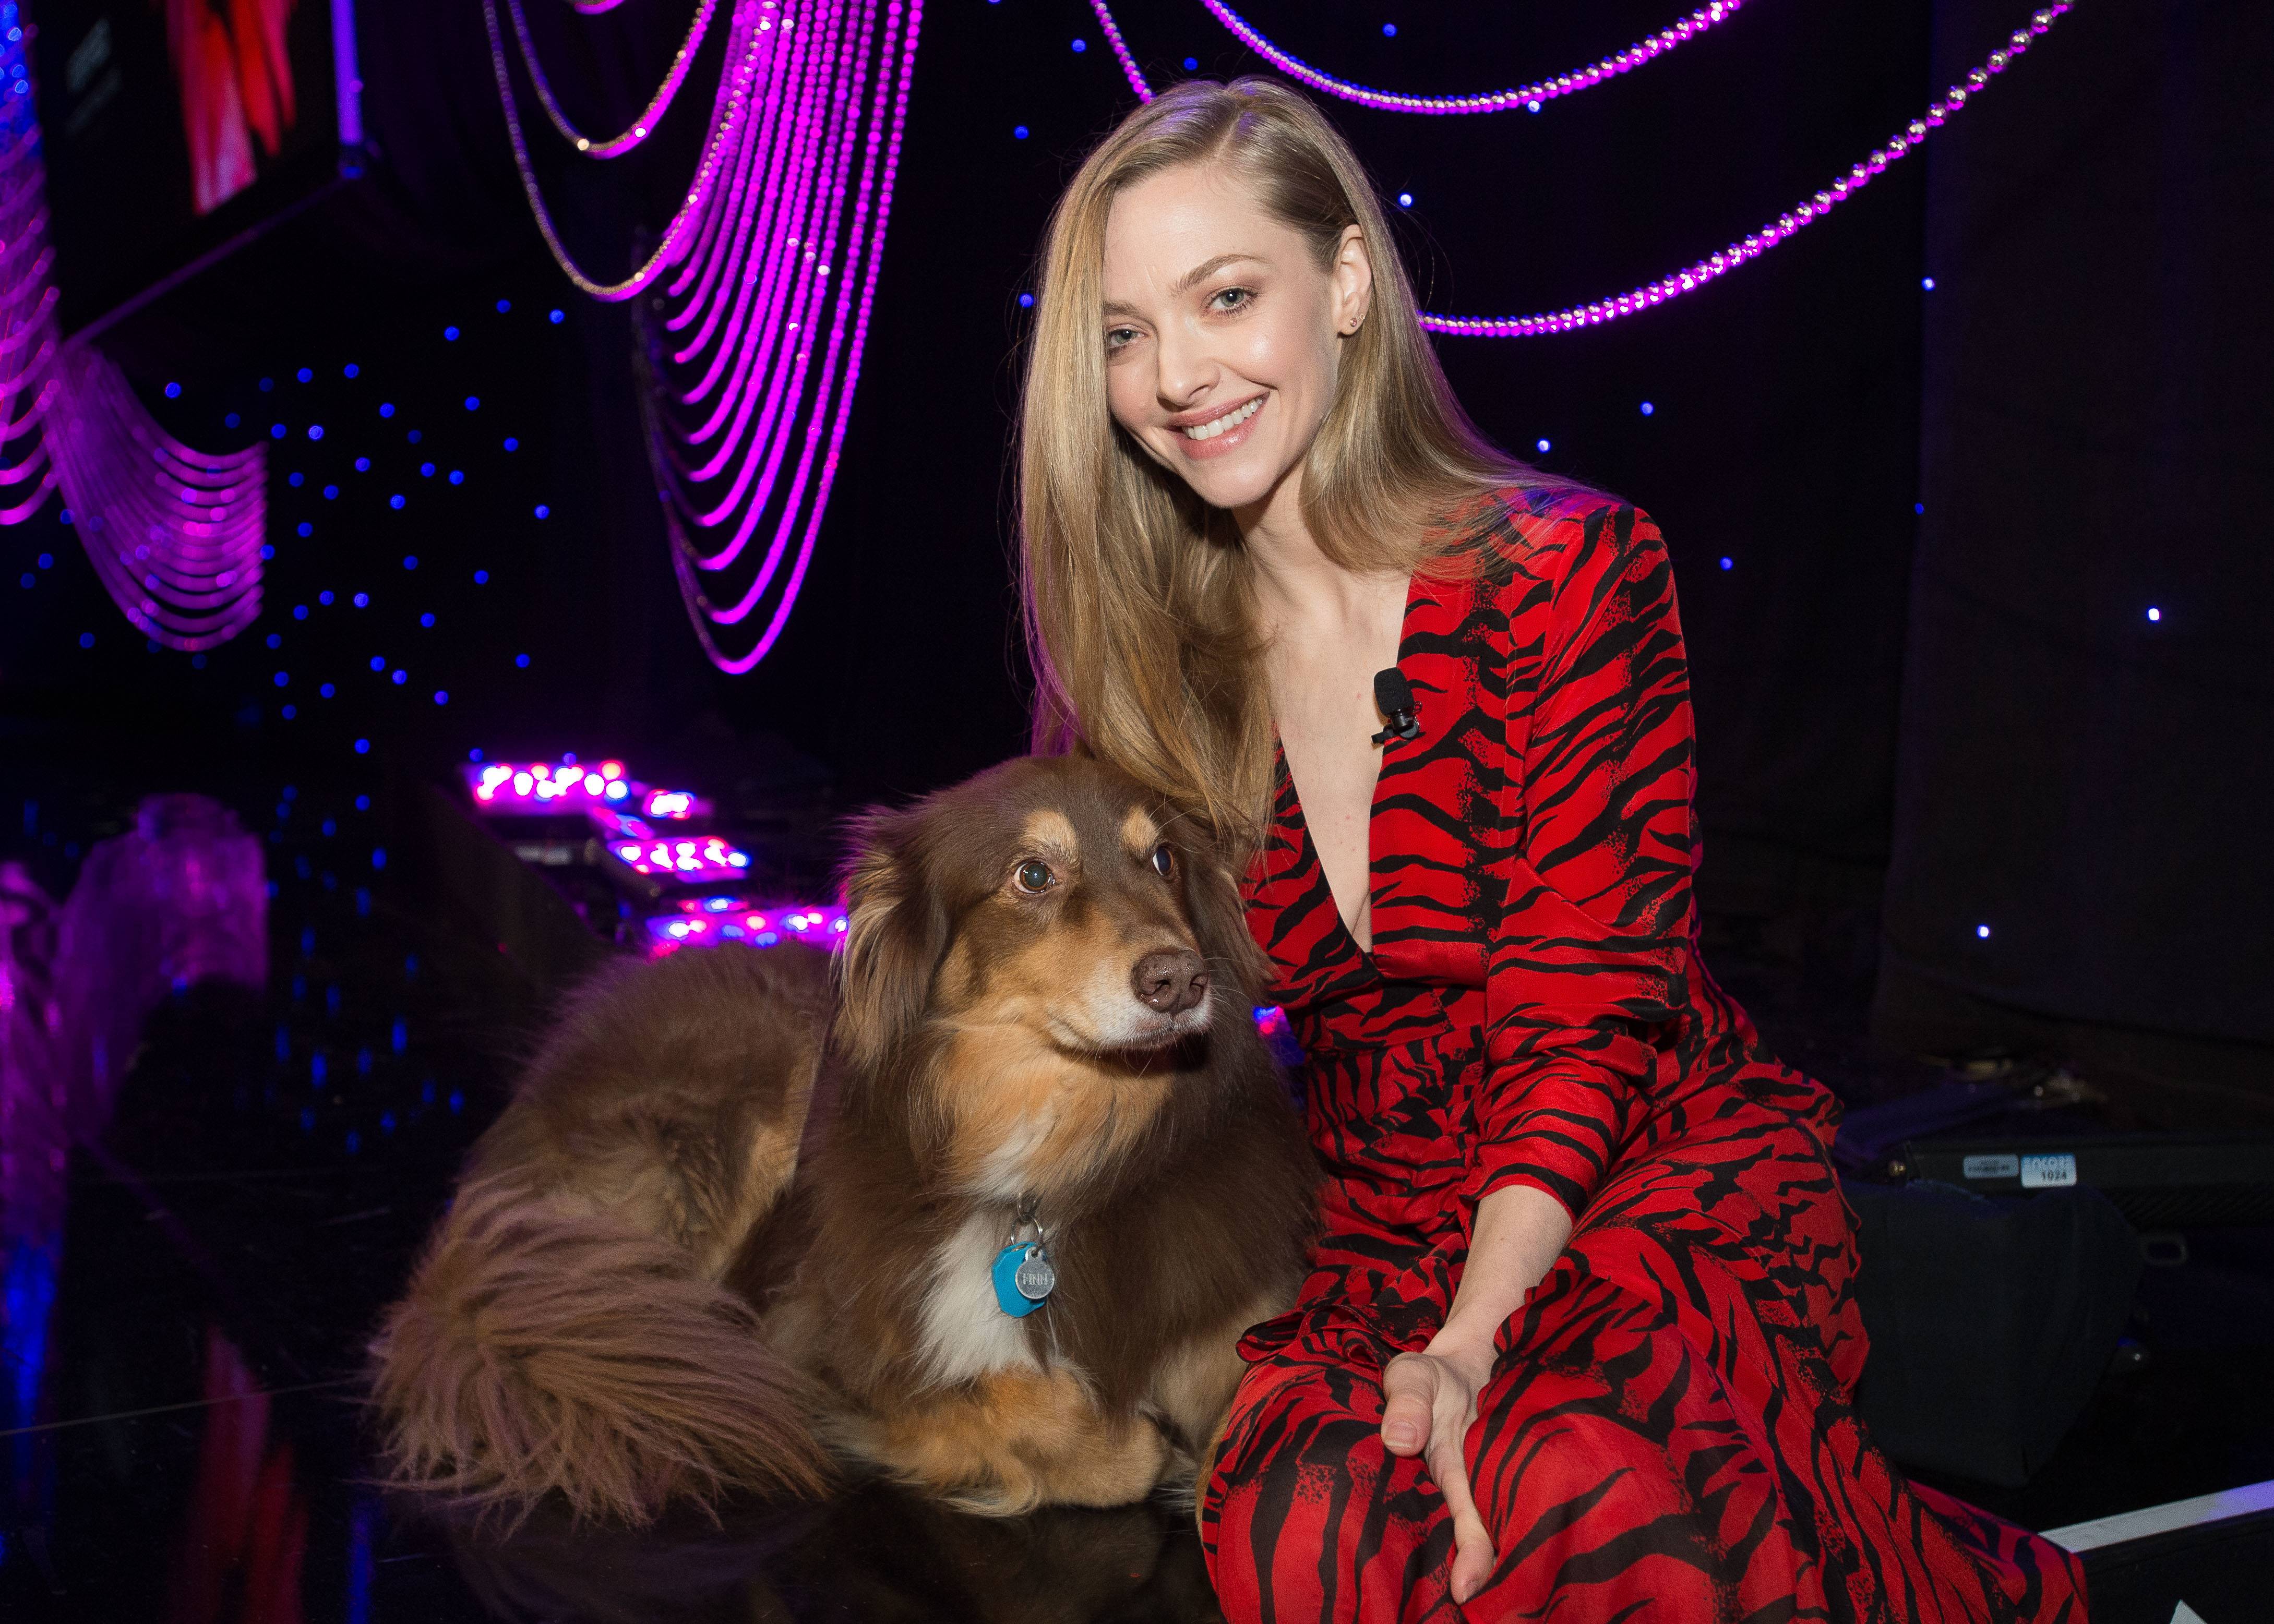 Amanda Seyfried and her dog, Finn, attend Forbes Travel Guide's Verified Luxury Summit kick off event at the Beverly Hilton hotel in Beverly Hills on Feb. 26, 2019.